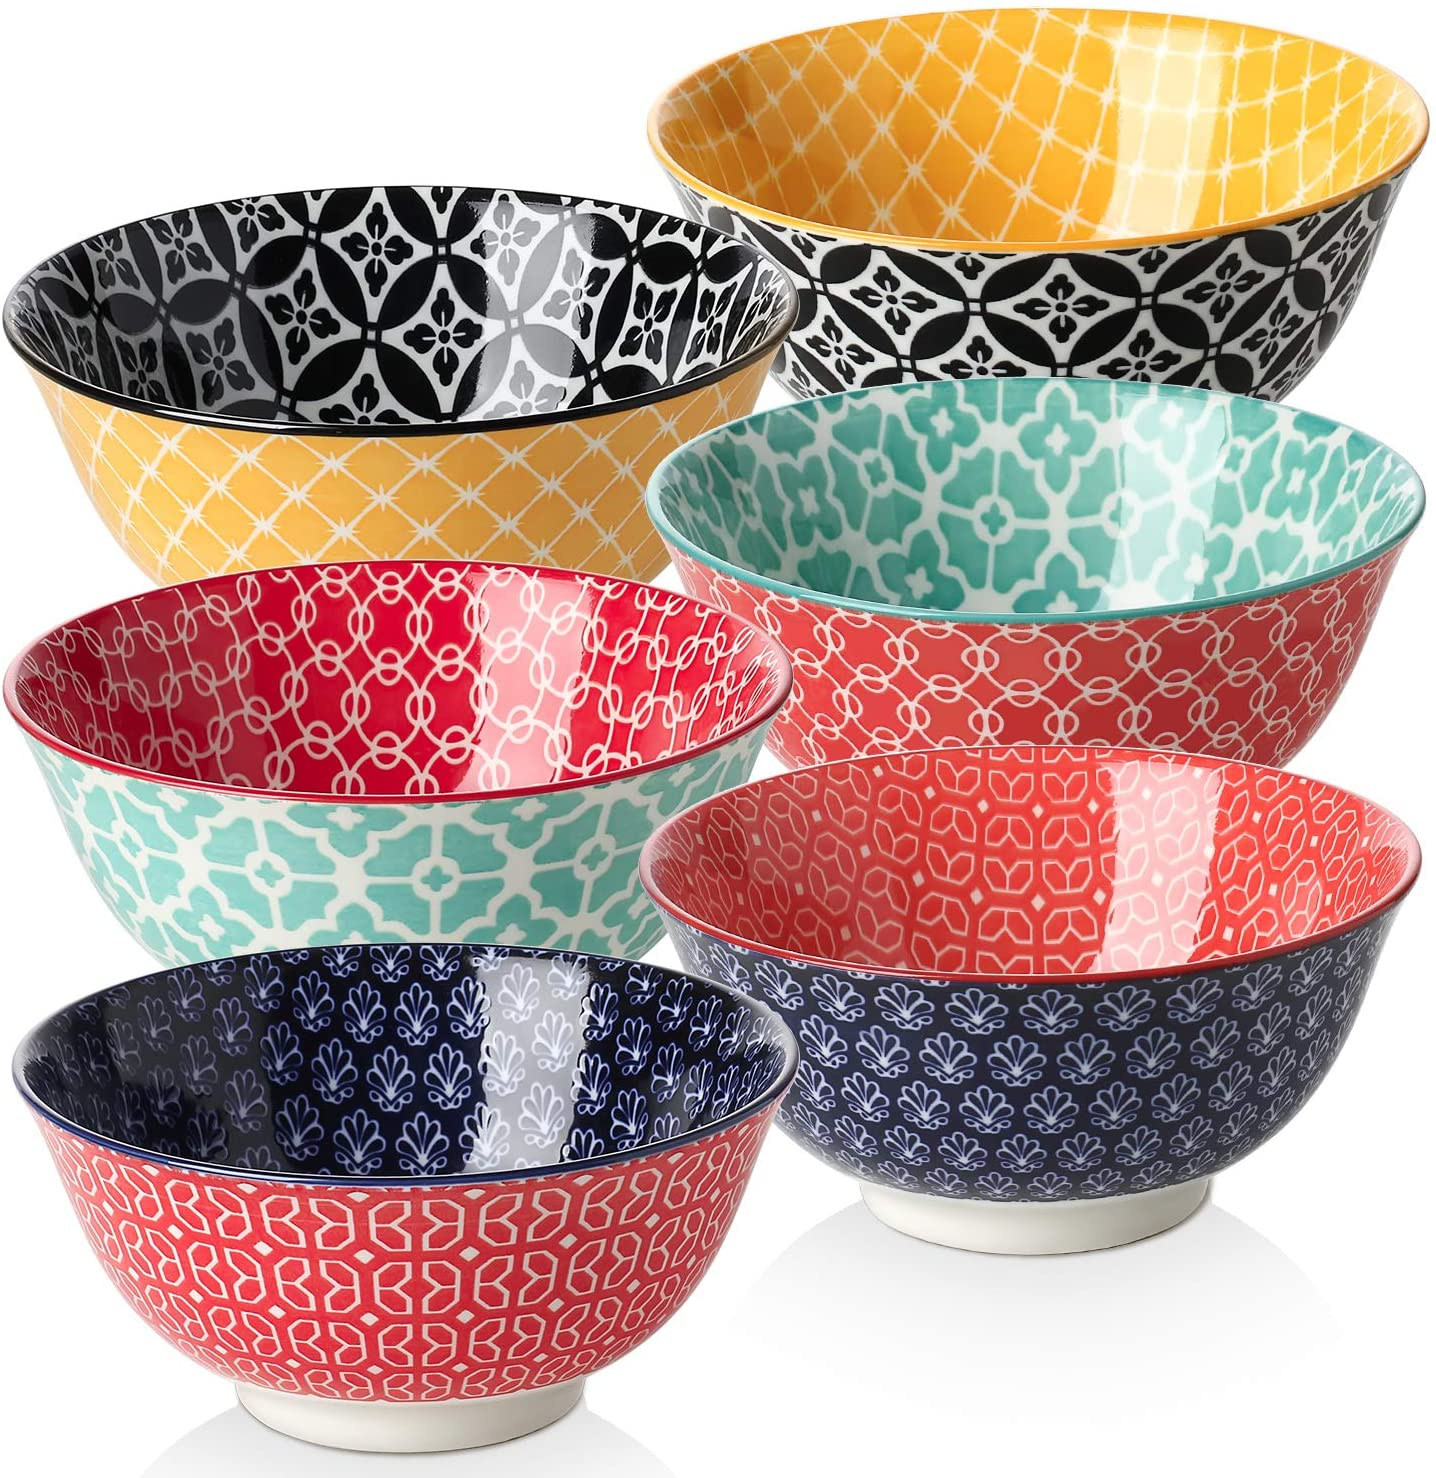 DOWAN Porcelain Dessert Bowls, 10 Fluid Ounces Vibrant Colors Small Bowls, Cute Snack Bowls for Ice Cream, Miso Soup, Side Dishes, Condiment, Microwave and Dishwasher Safe, Lightweight, Set of 6